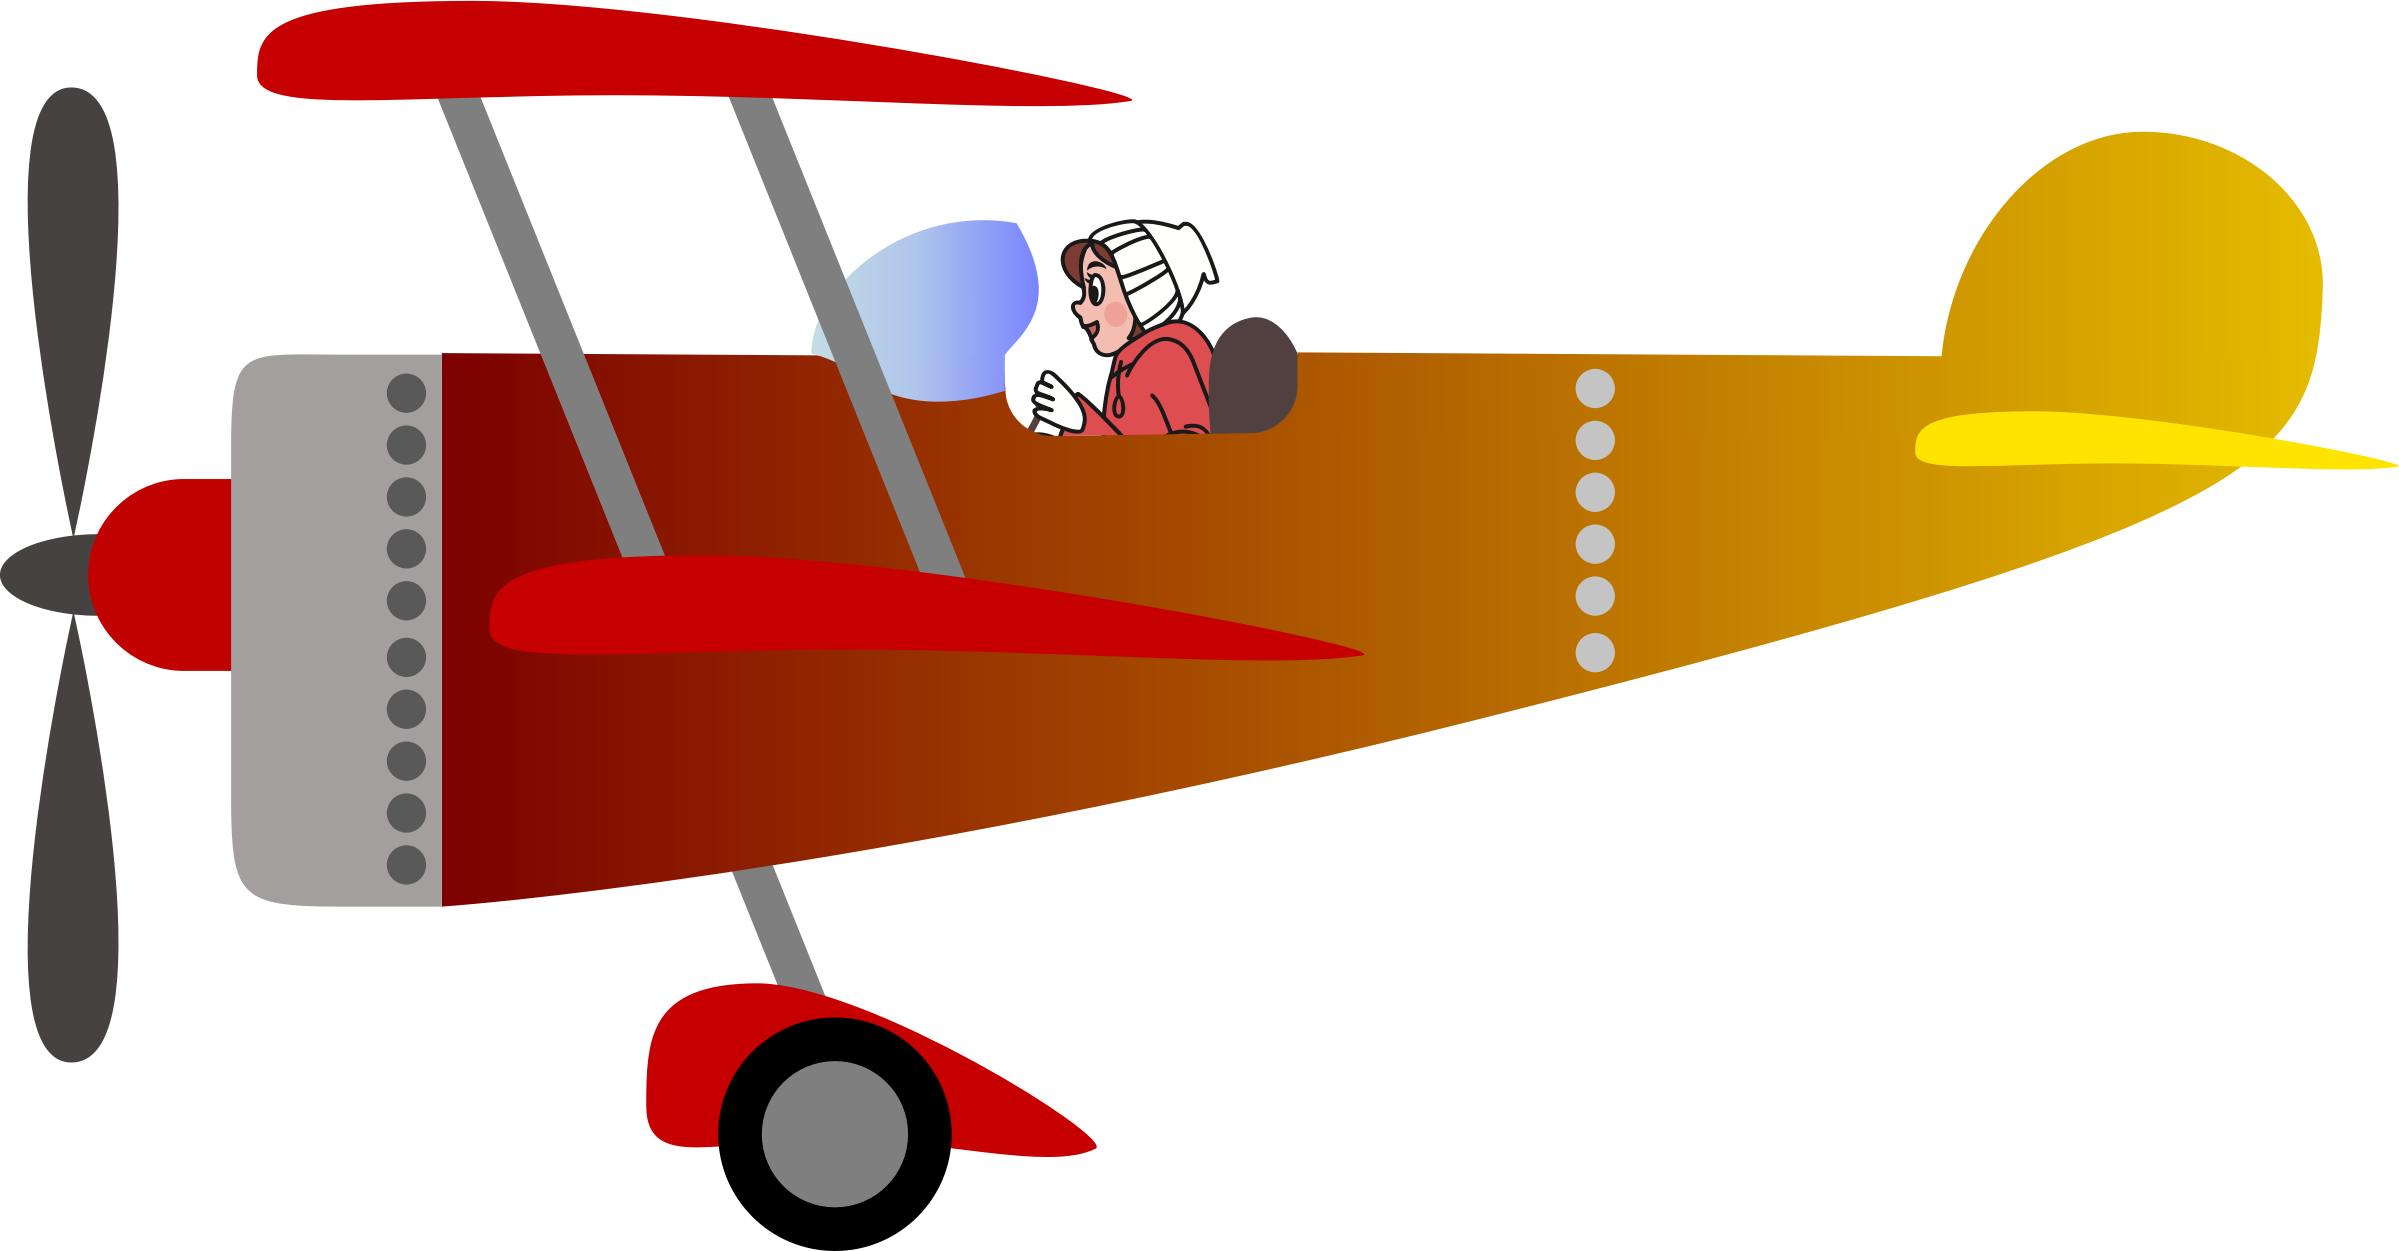 Biplane 2 with a pilot [woman] by Vookimedlo